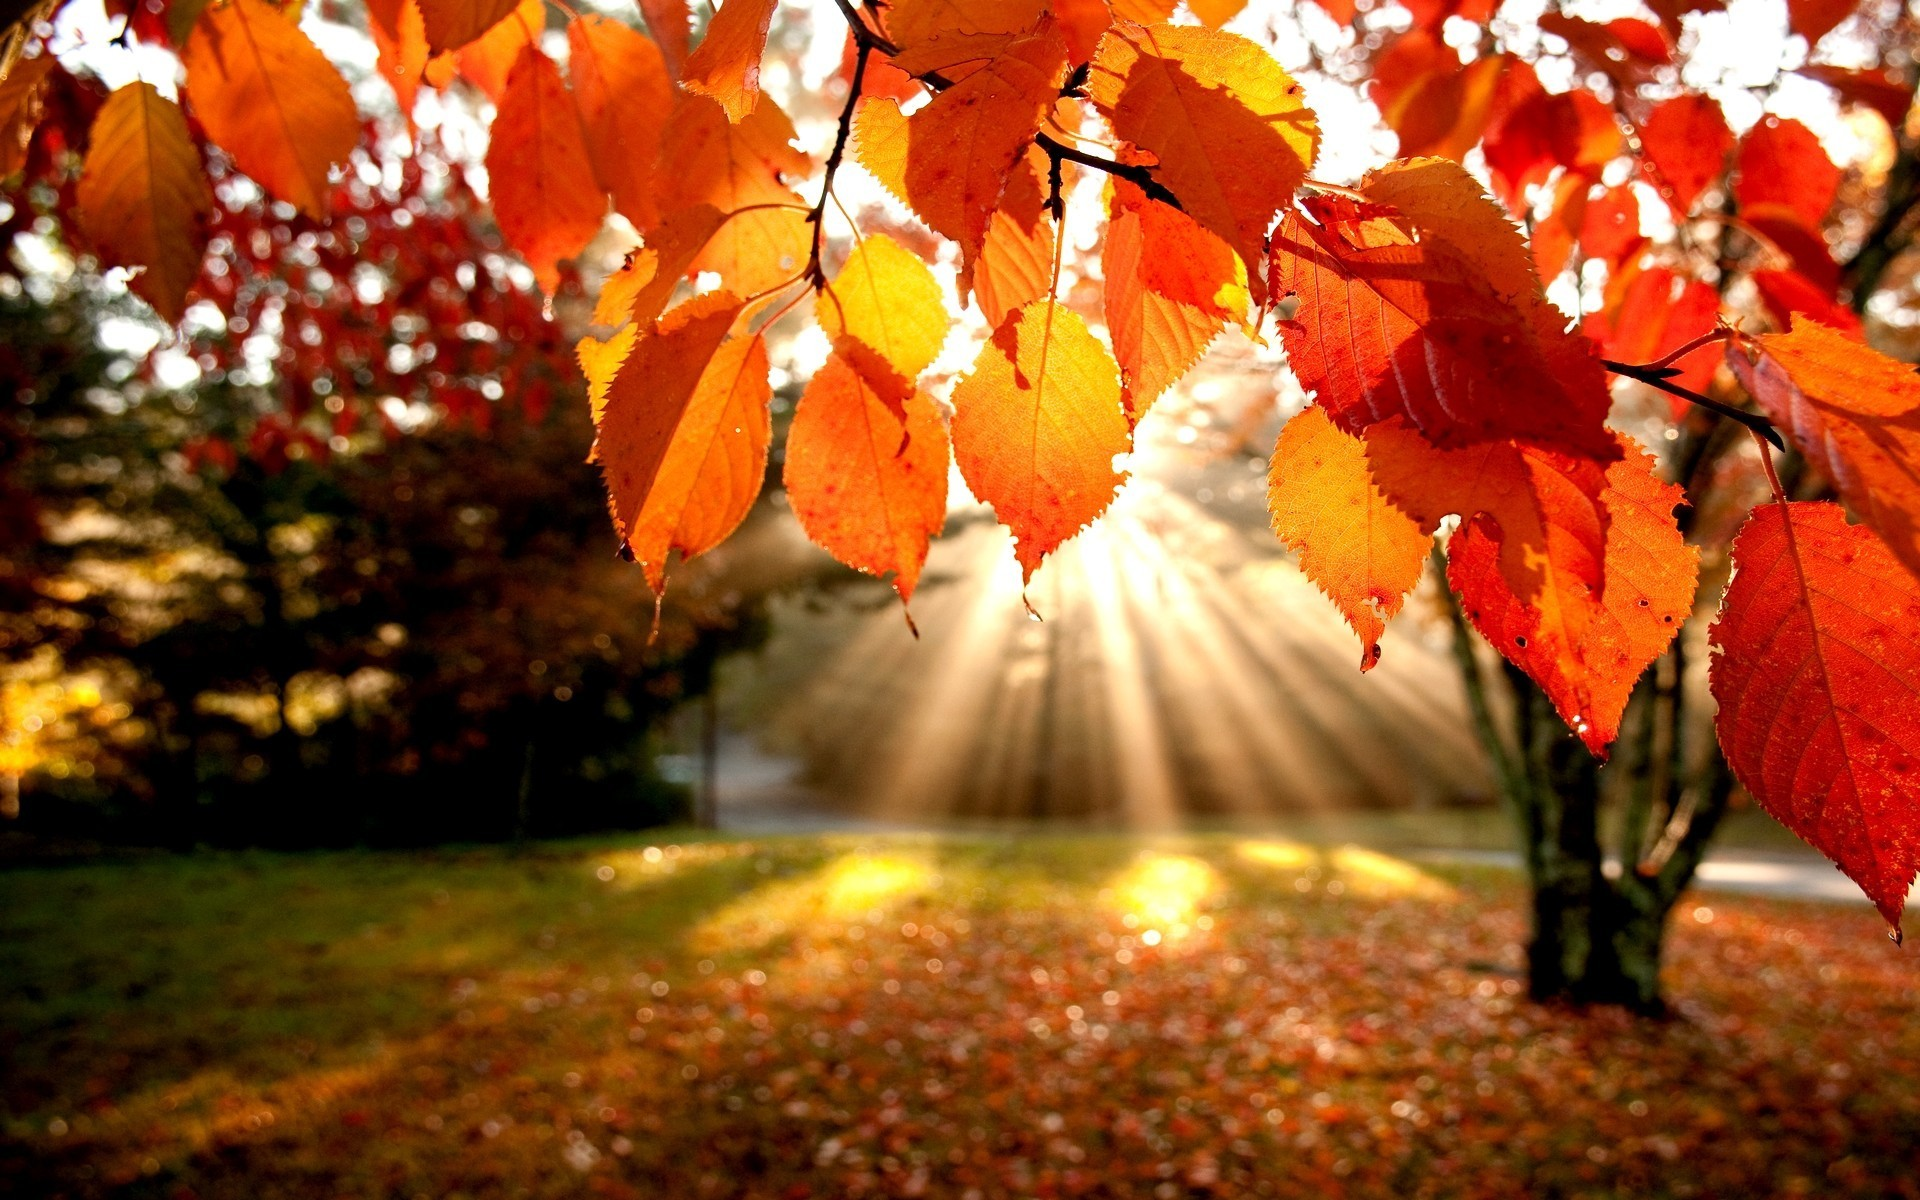 Fall Leaves Wallpapers for Desktop wallpaper Fall Leaves Wallpapers 1920x1200